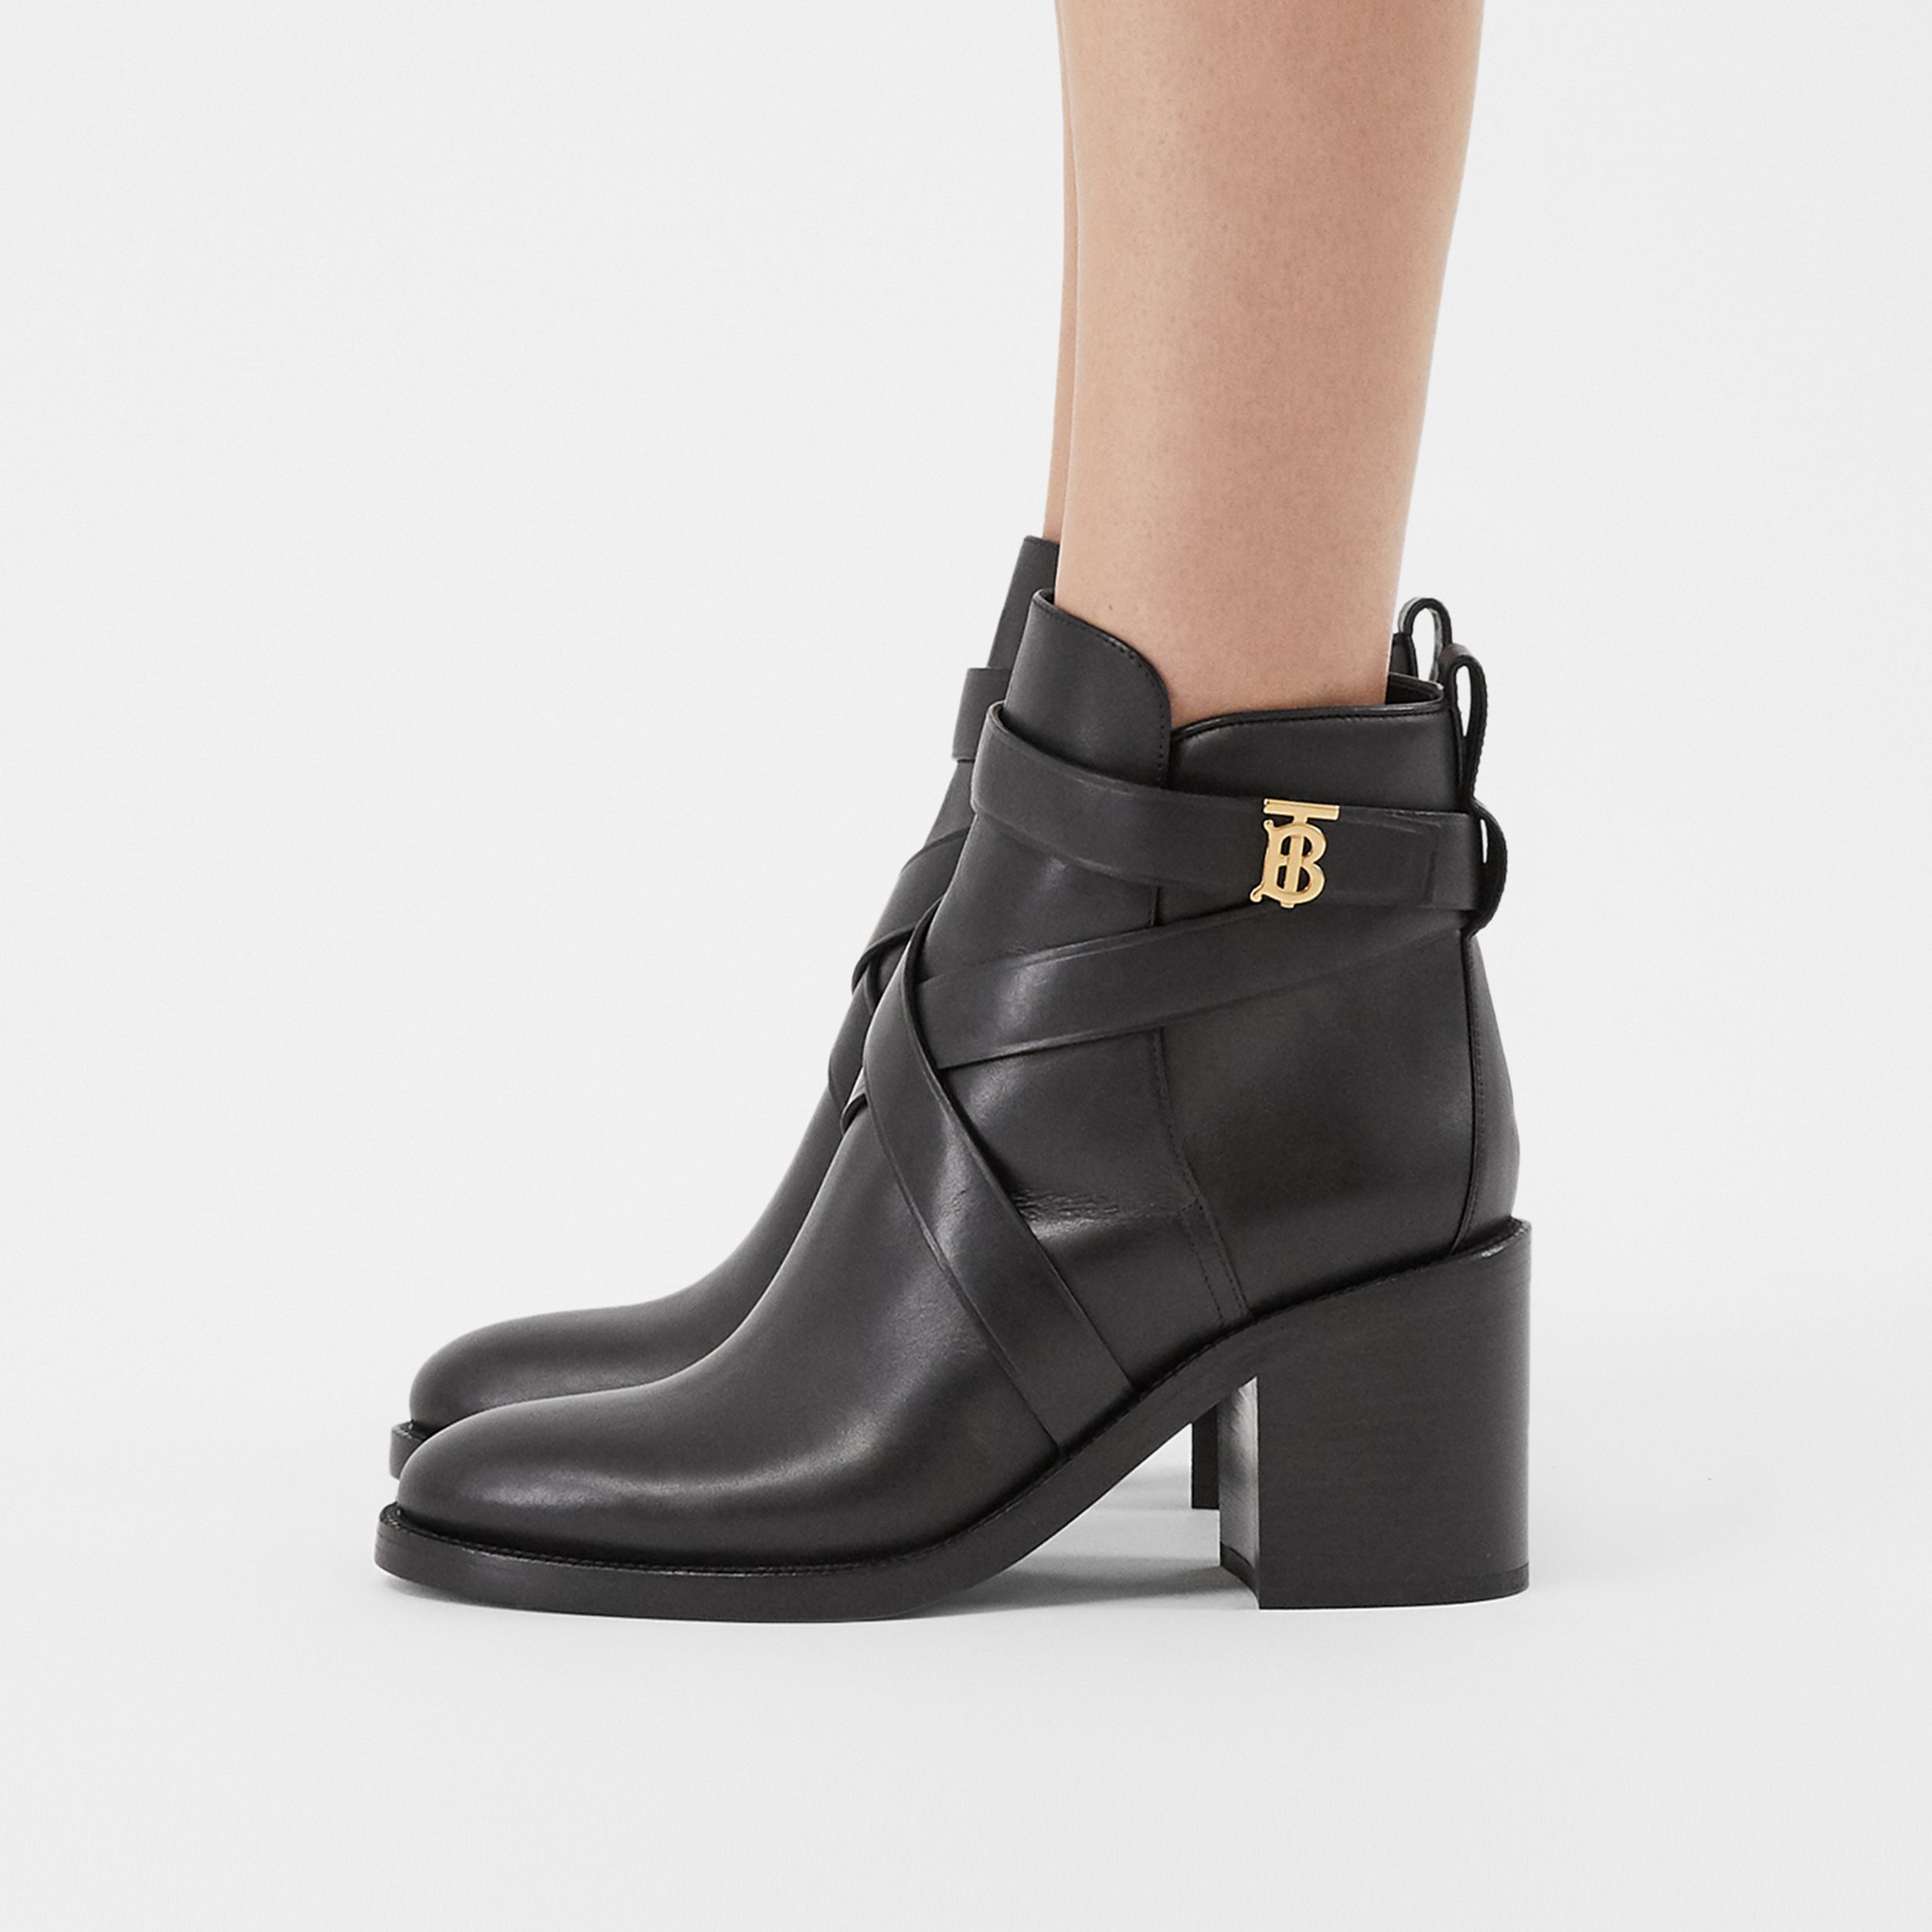 Monogram Motif Leather Ankle Boots in Black - Women | Burberry Australia - 3